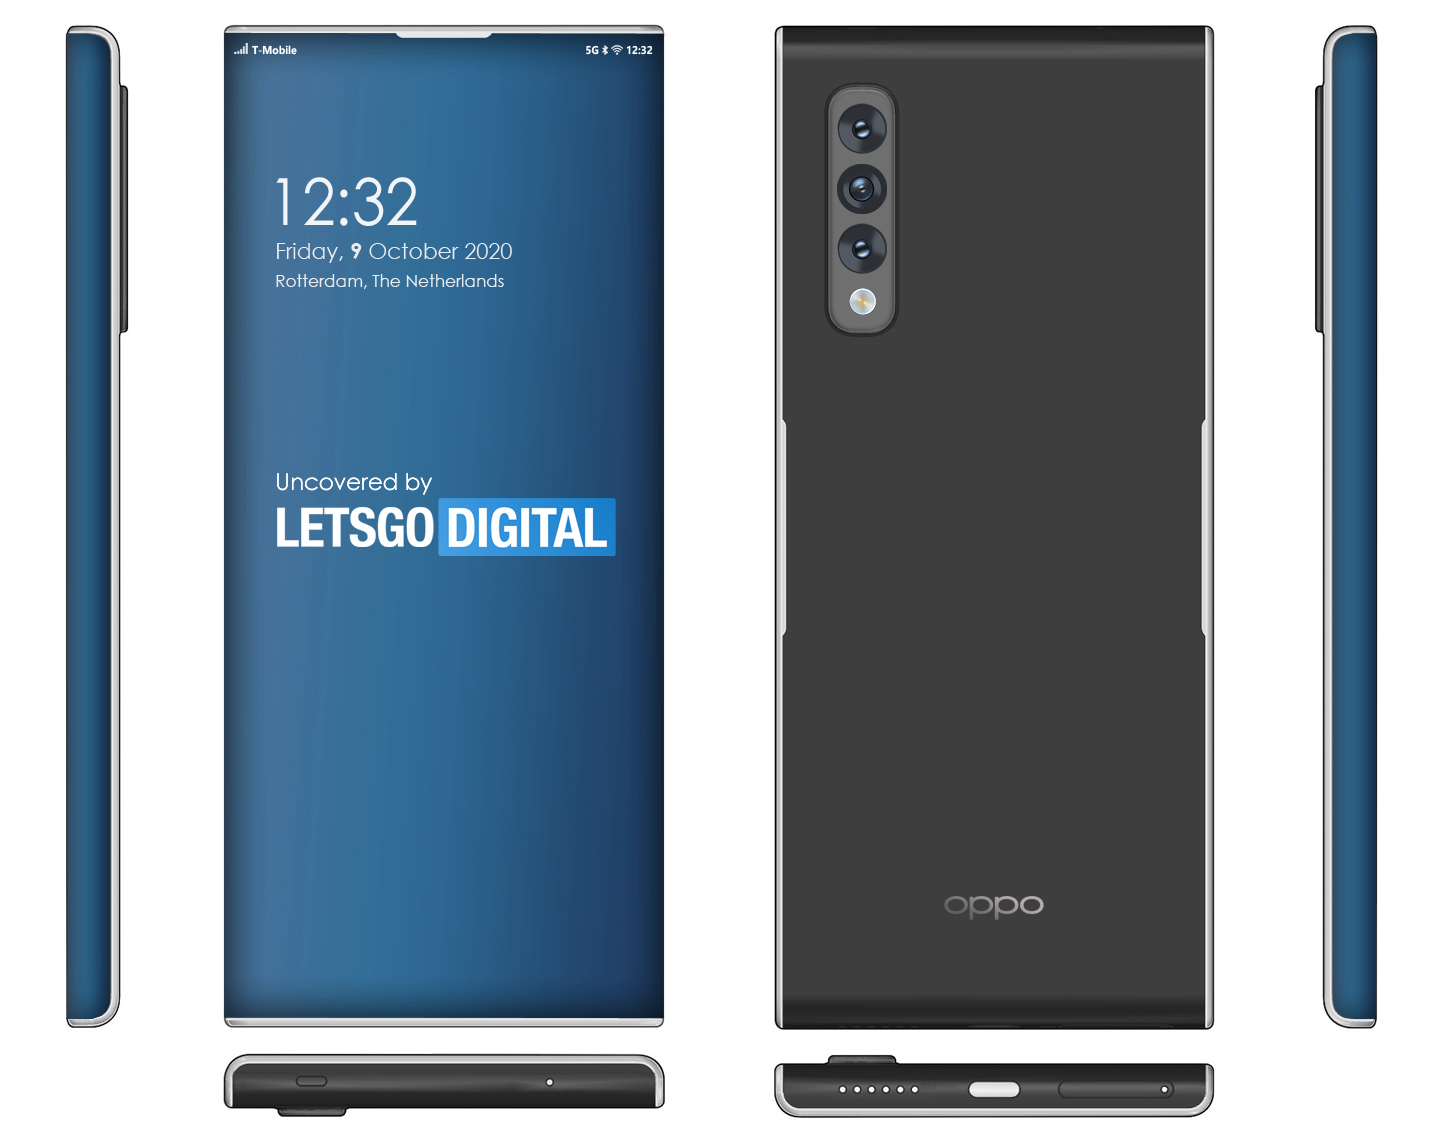 Oppo 5G telefoon super curved display